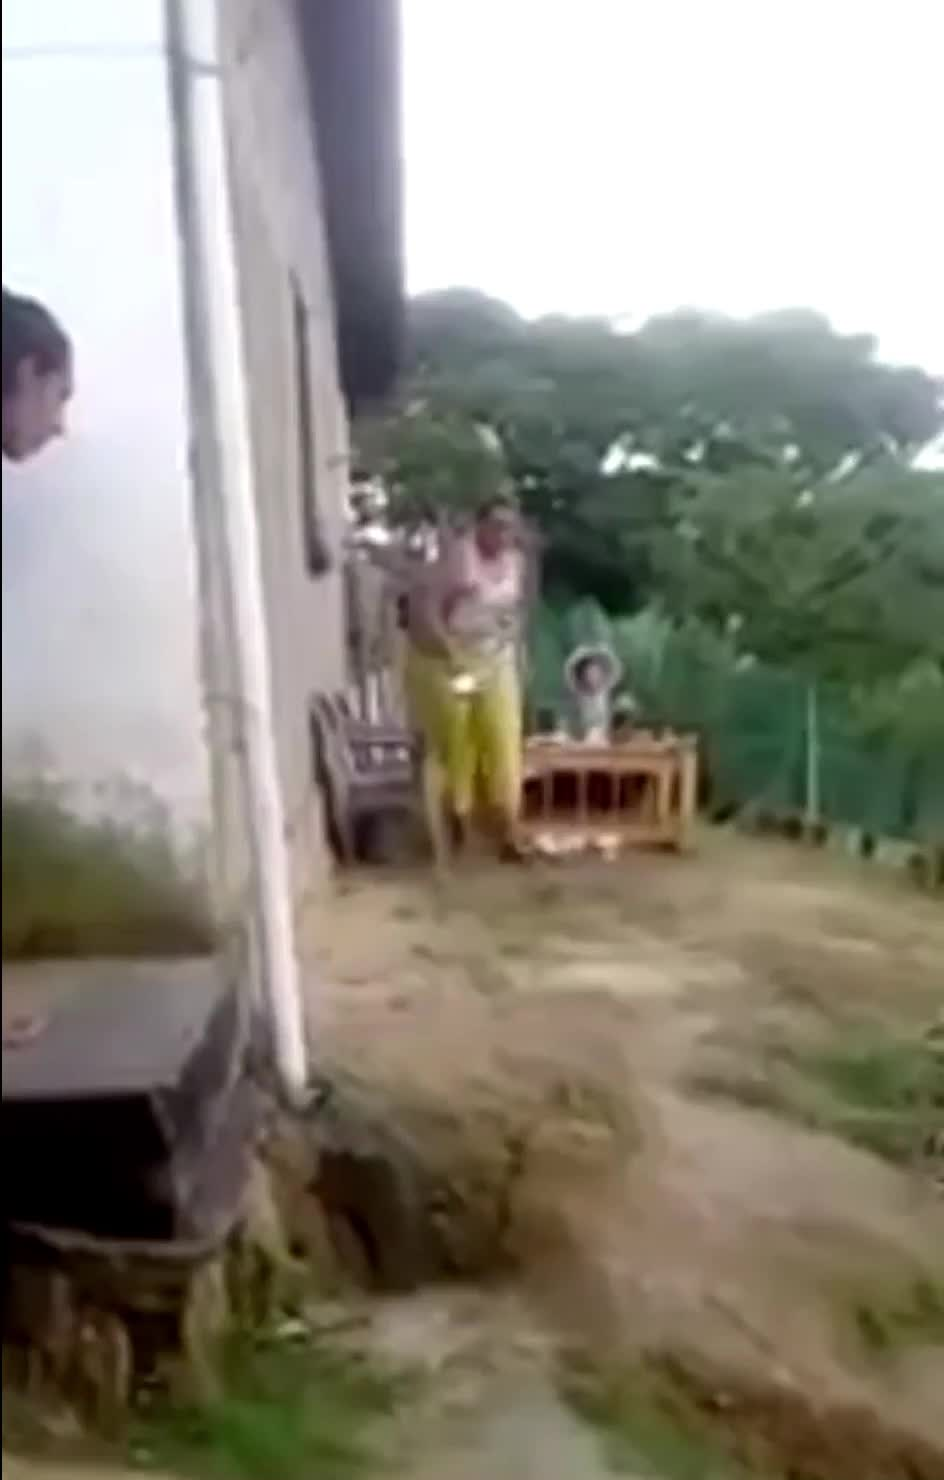 GIF Brewery, WCGW, boy, fail, funny, hit, instant, instantregret, lol, mother, mum, regret, sad, WCGW if I scared my mother GIFs